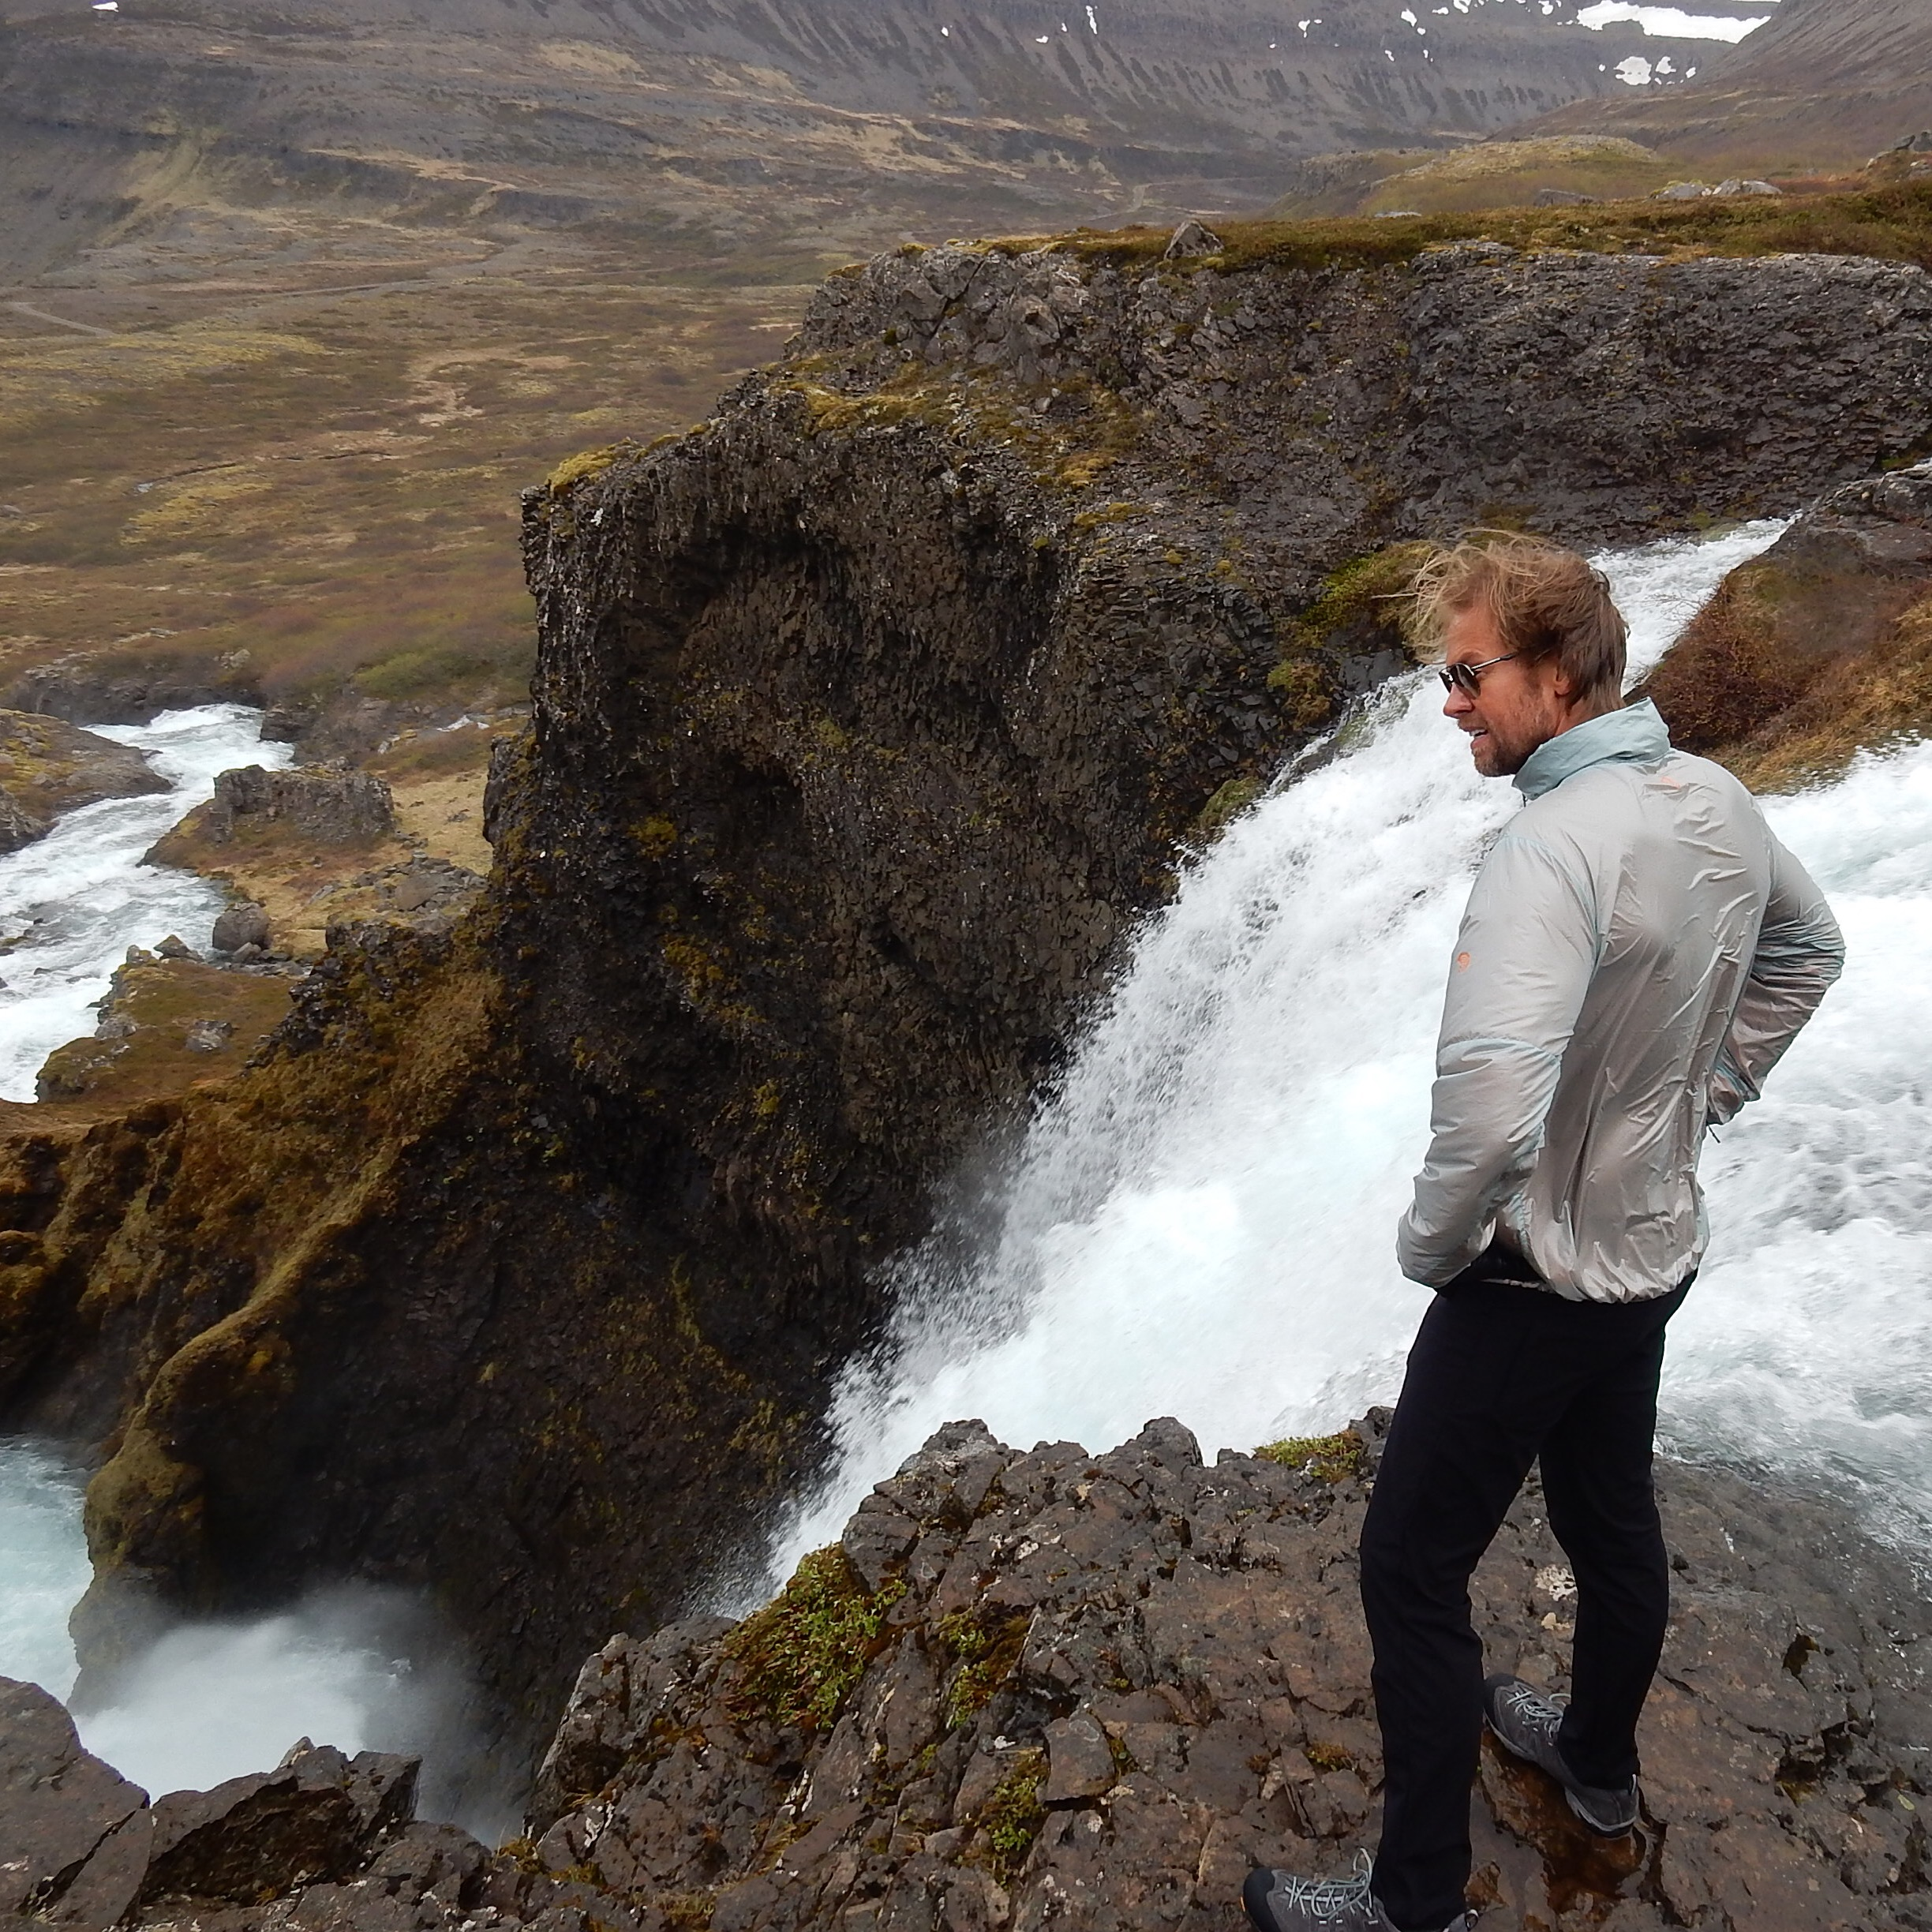 Ryan Winfield scouting story locations in Iceland's Westfjords, 2016.